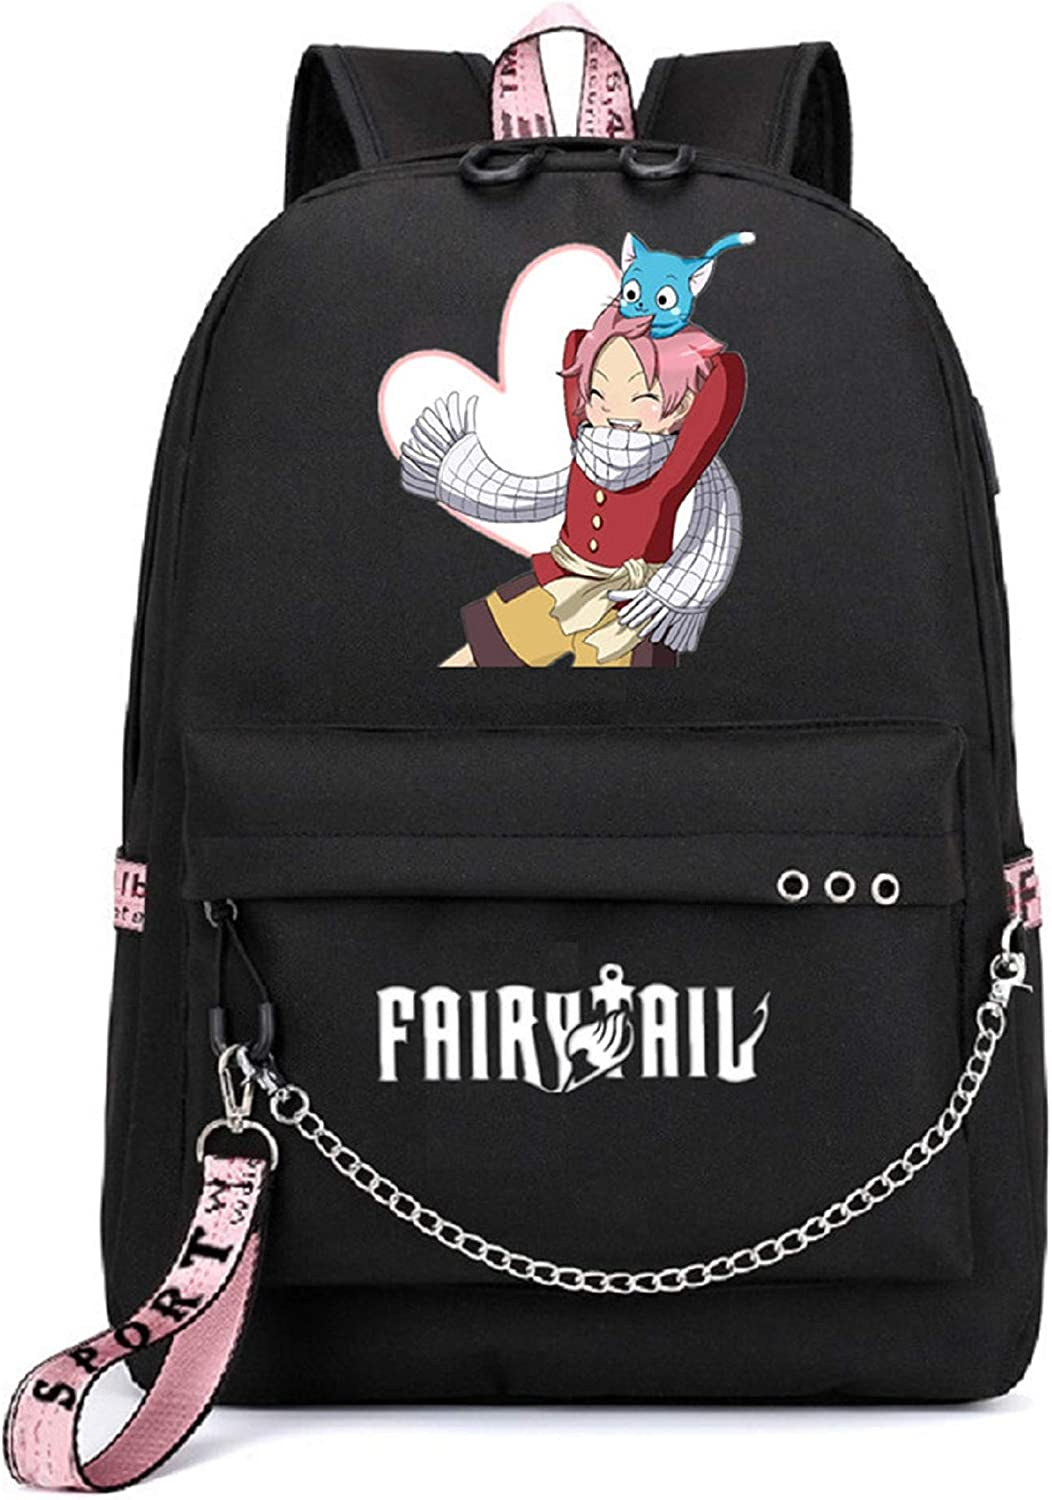 YOYOSHome Anime Fairy Tail Cosplay Bookbag ! Super beauty product restock quality top! Daypack Backpack Scho OFFicial store